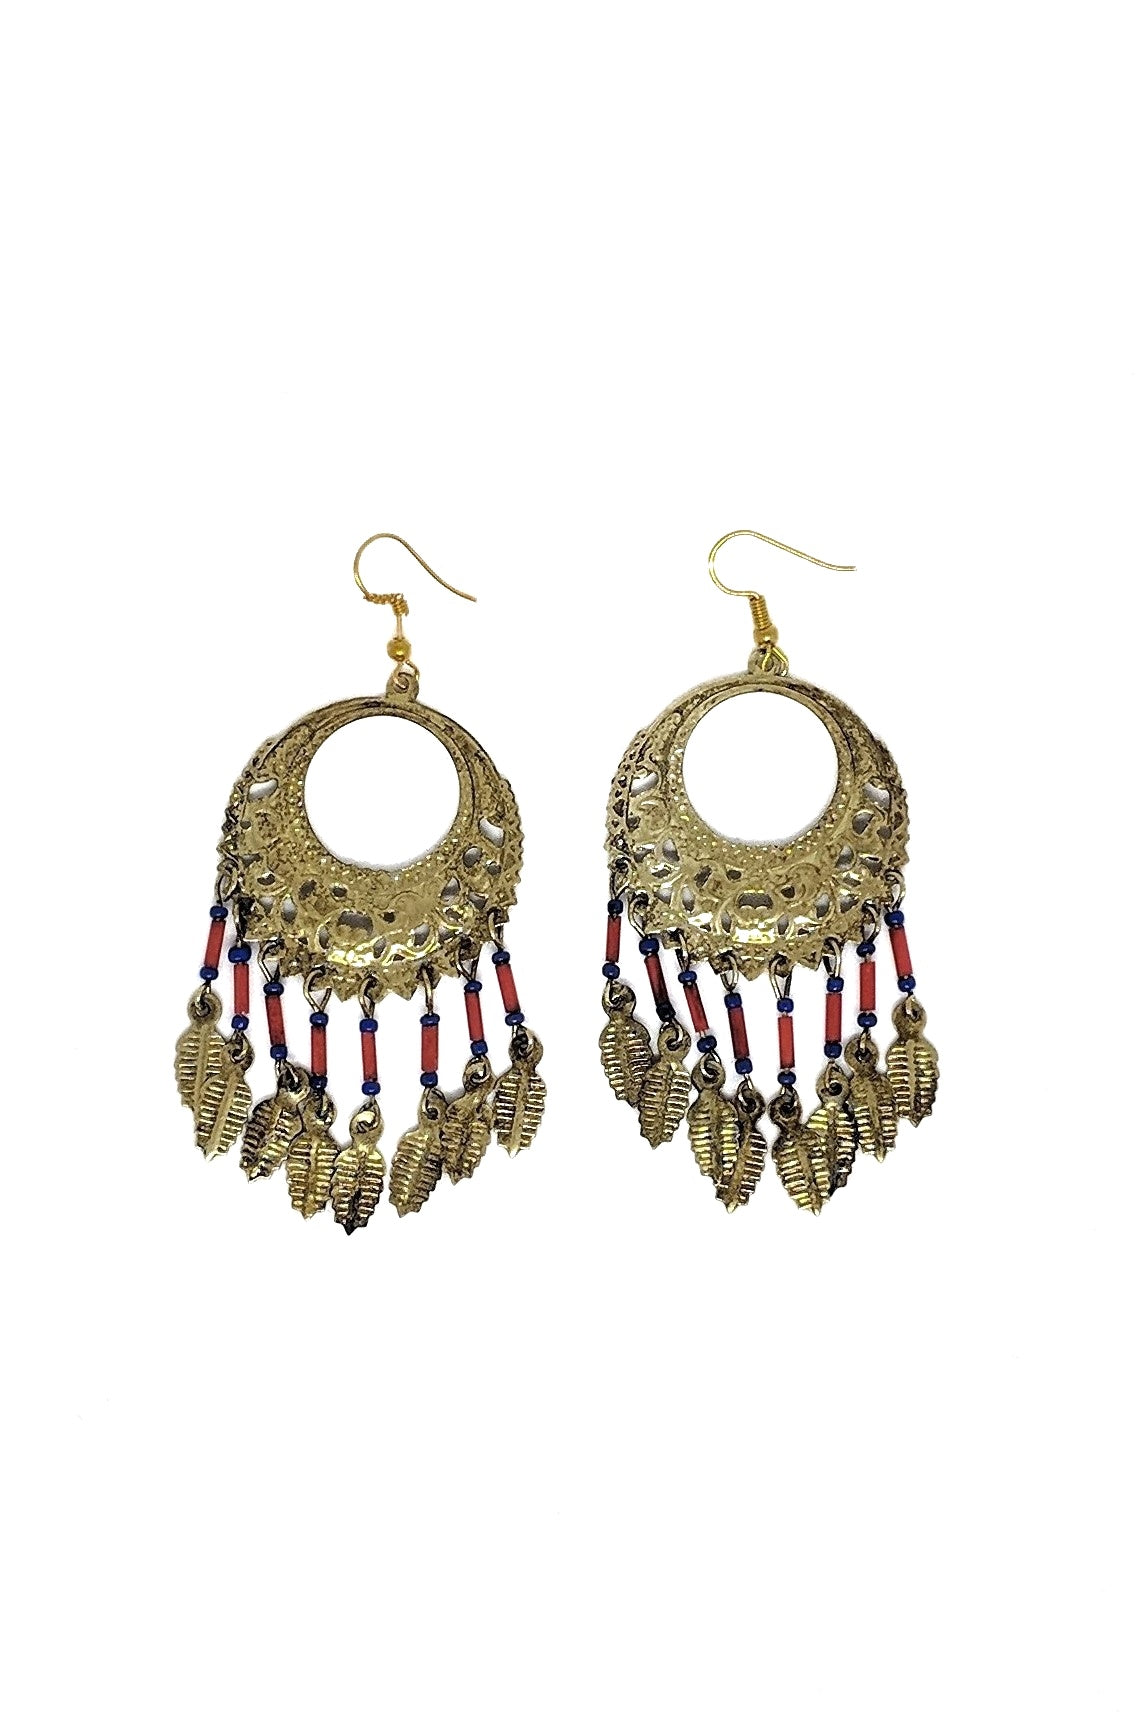 YELLOW-GOLD METAL EARRINGS WITH RED & BLUE BEADS